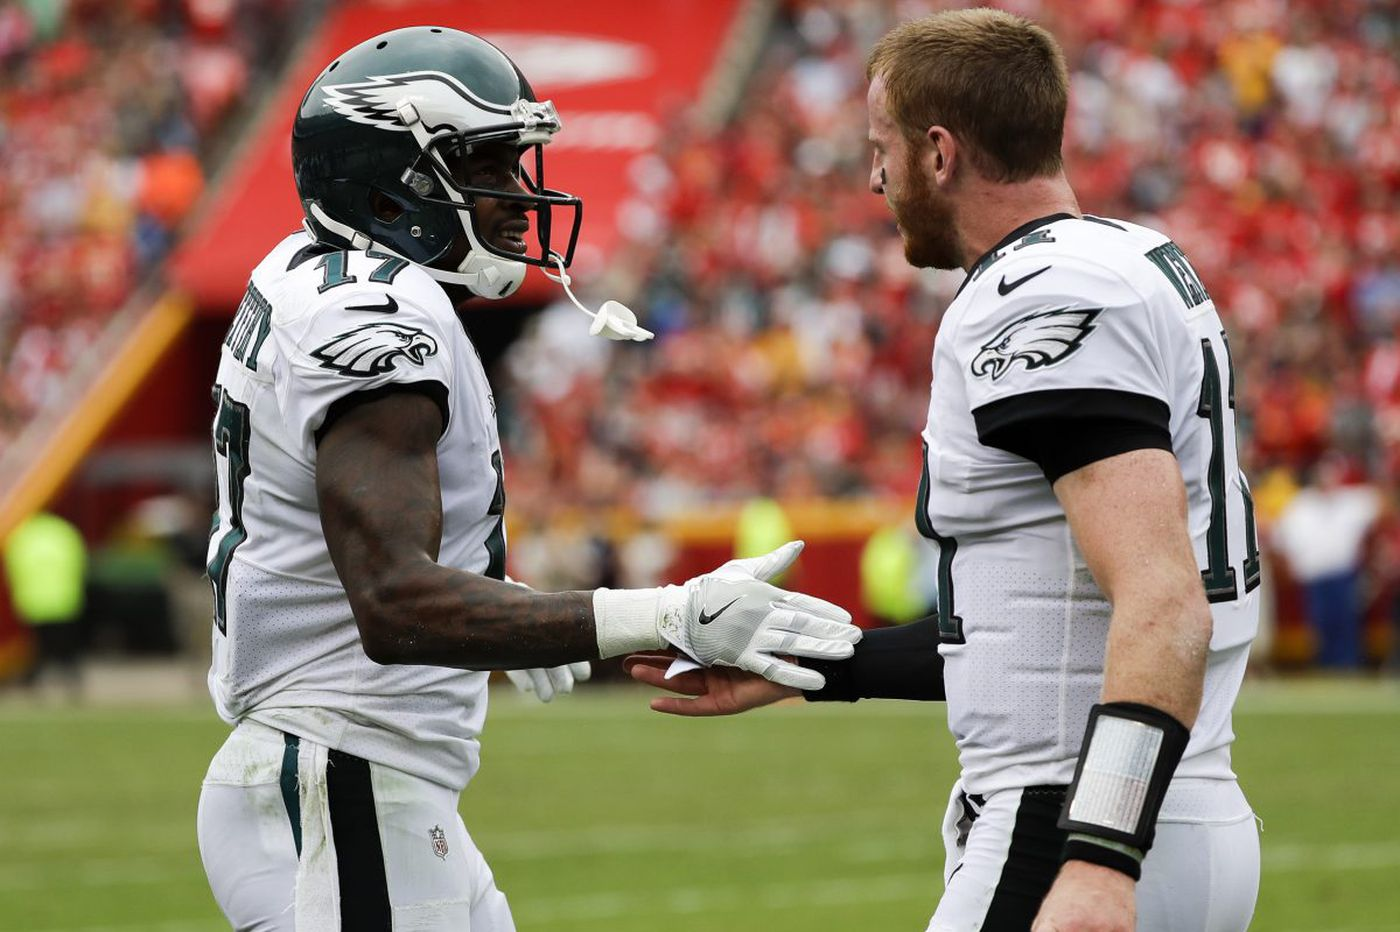 Alshon Jeffery first offered an upgrade for Carson Wentz; now he provides stability